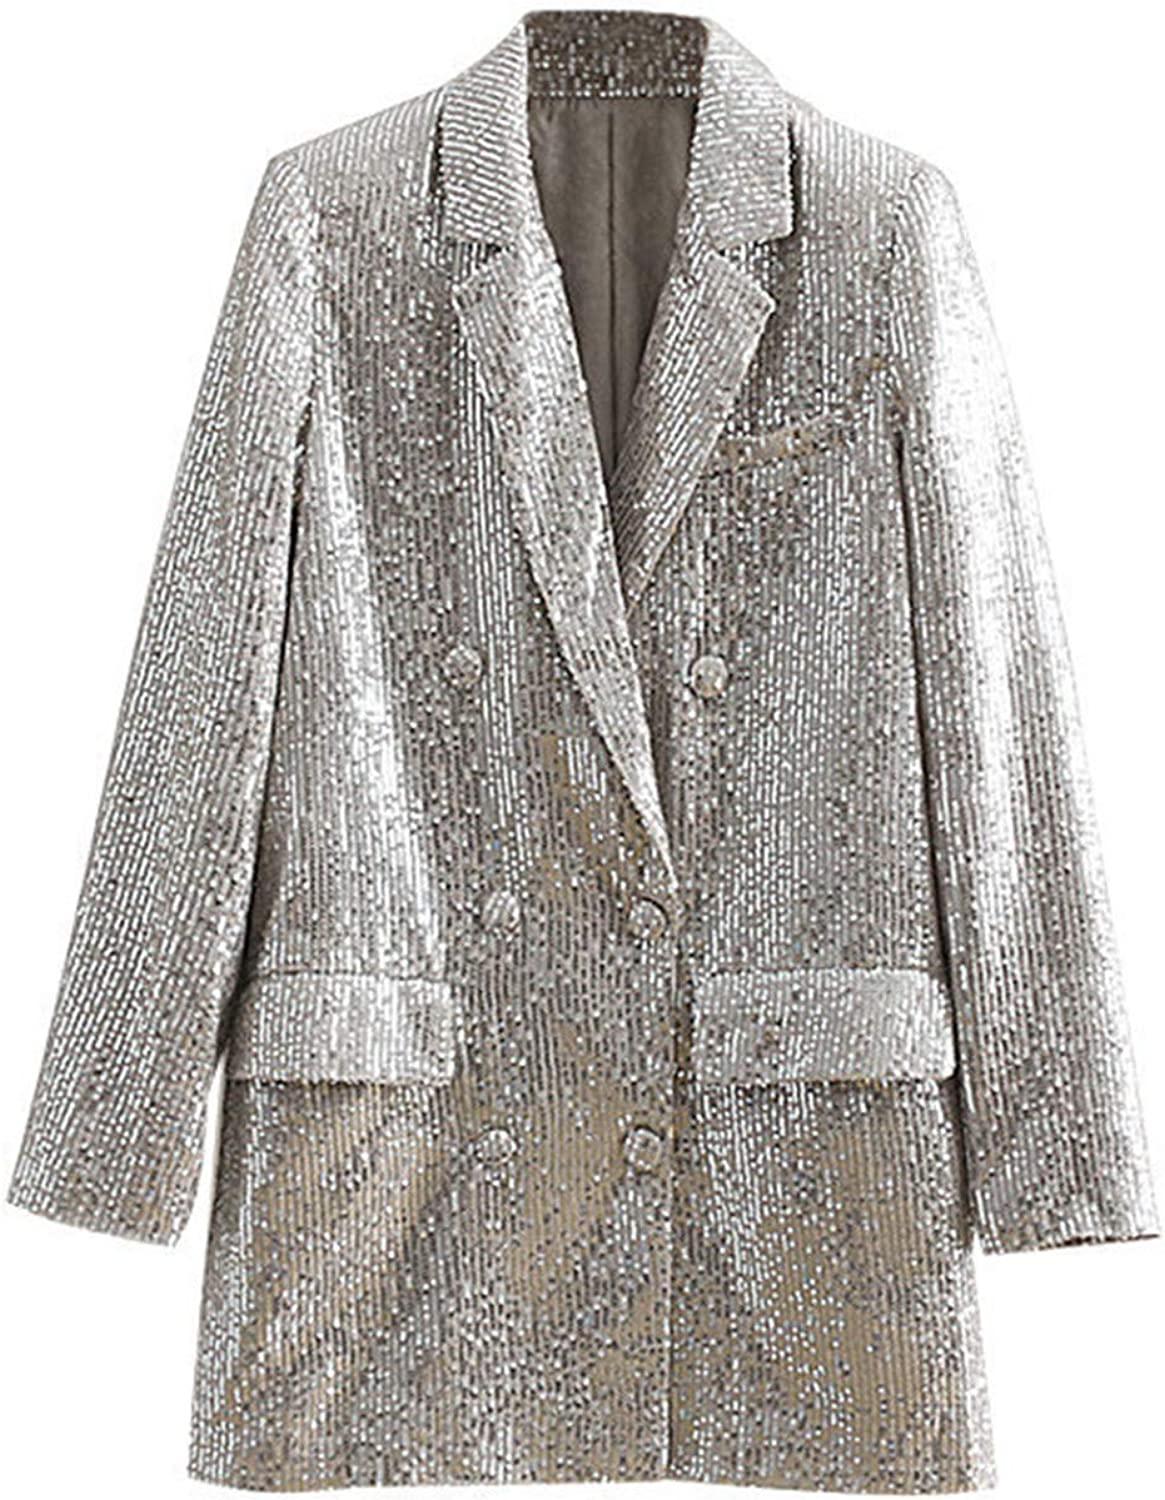 Vintage Double Breasted Sequin Blazers Coat Women Fashion Notched Collar Long Sleeves Outerwear